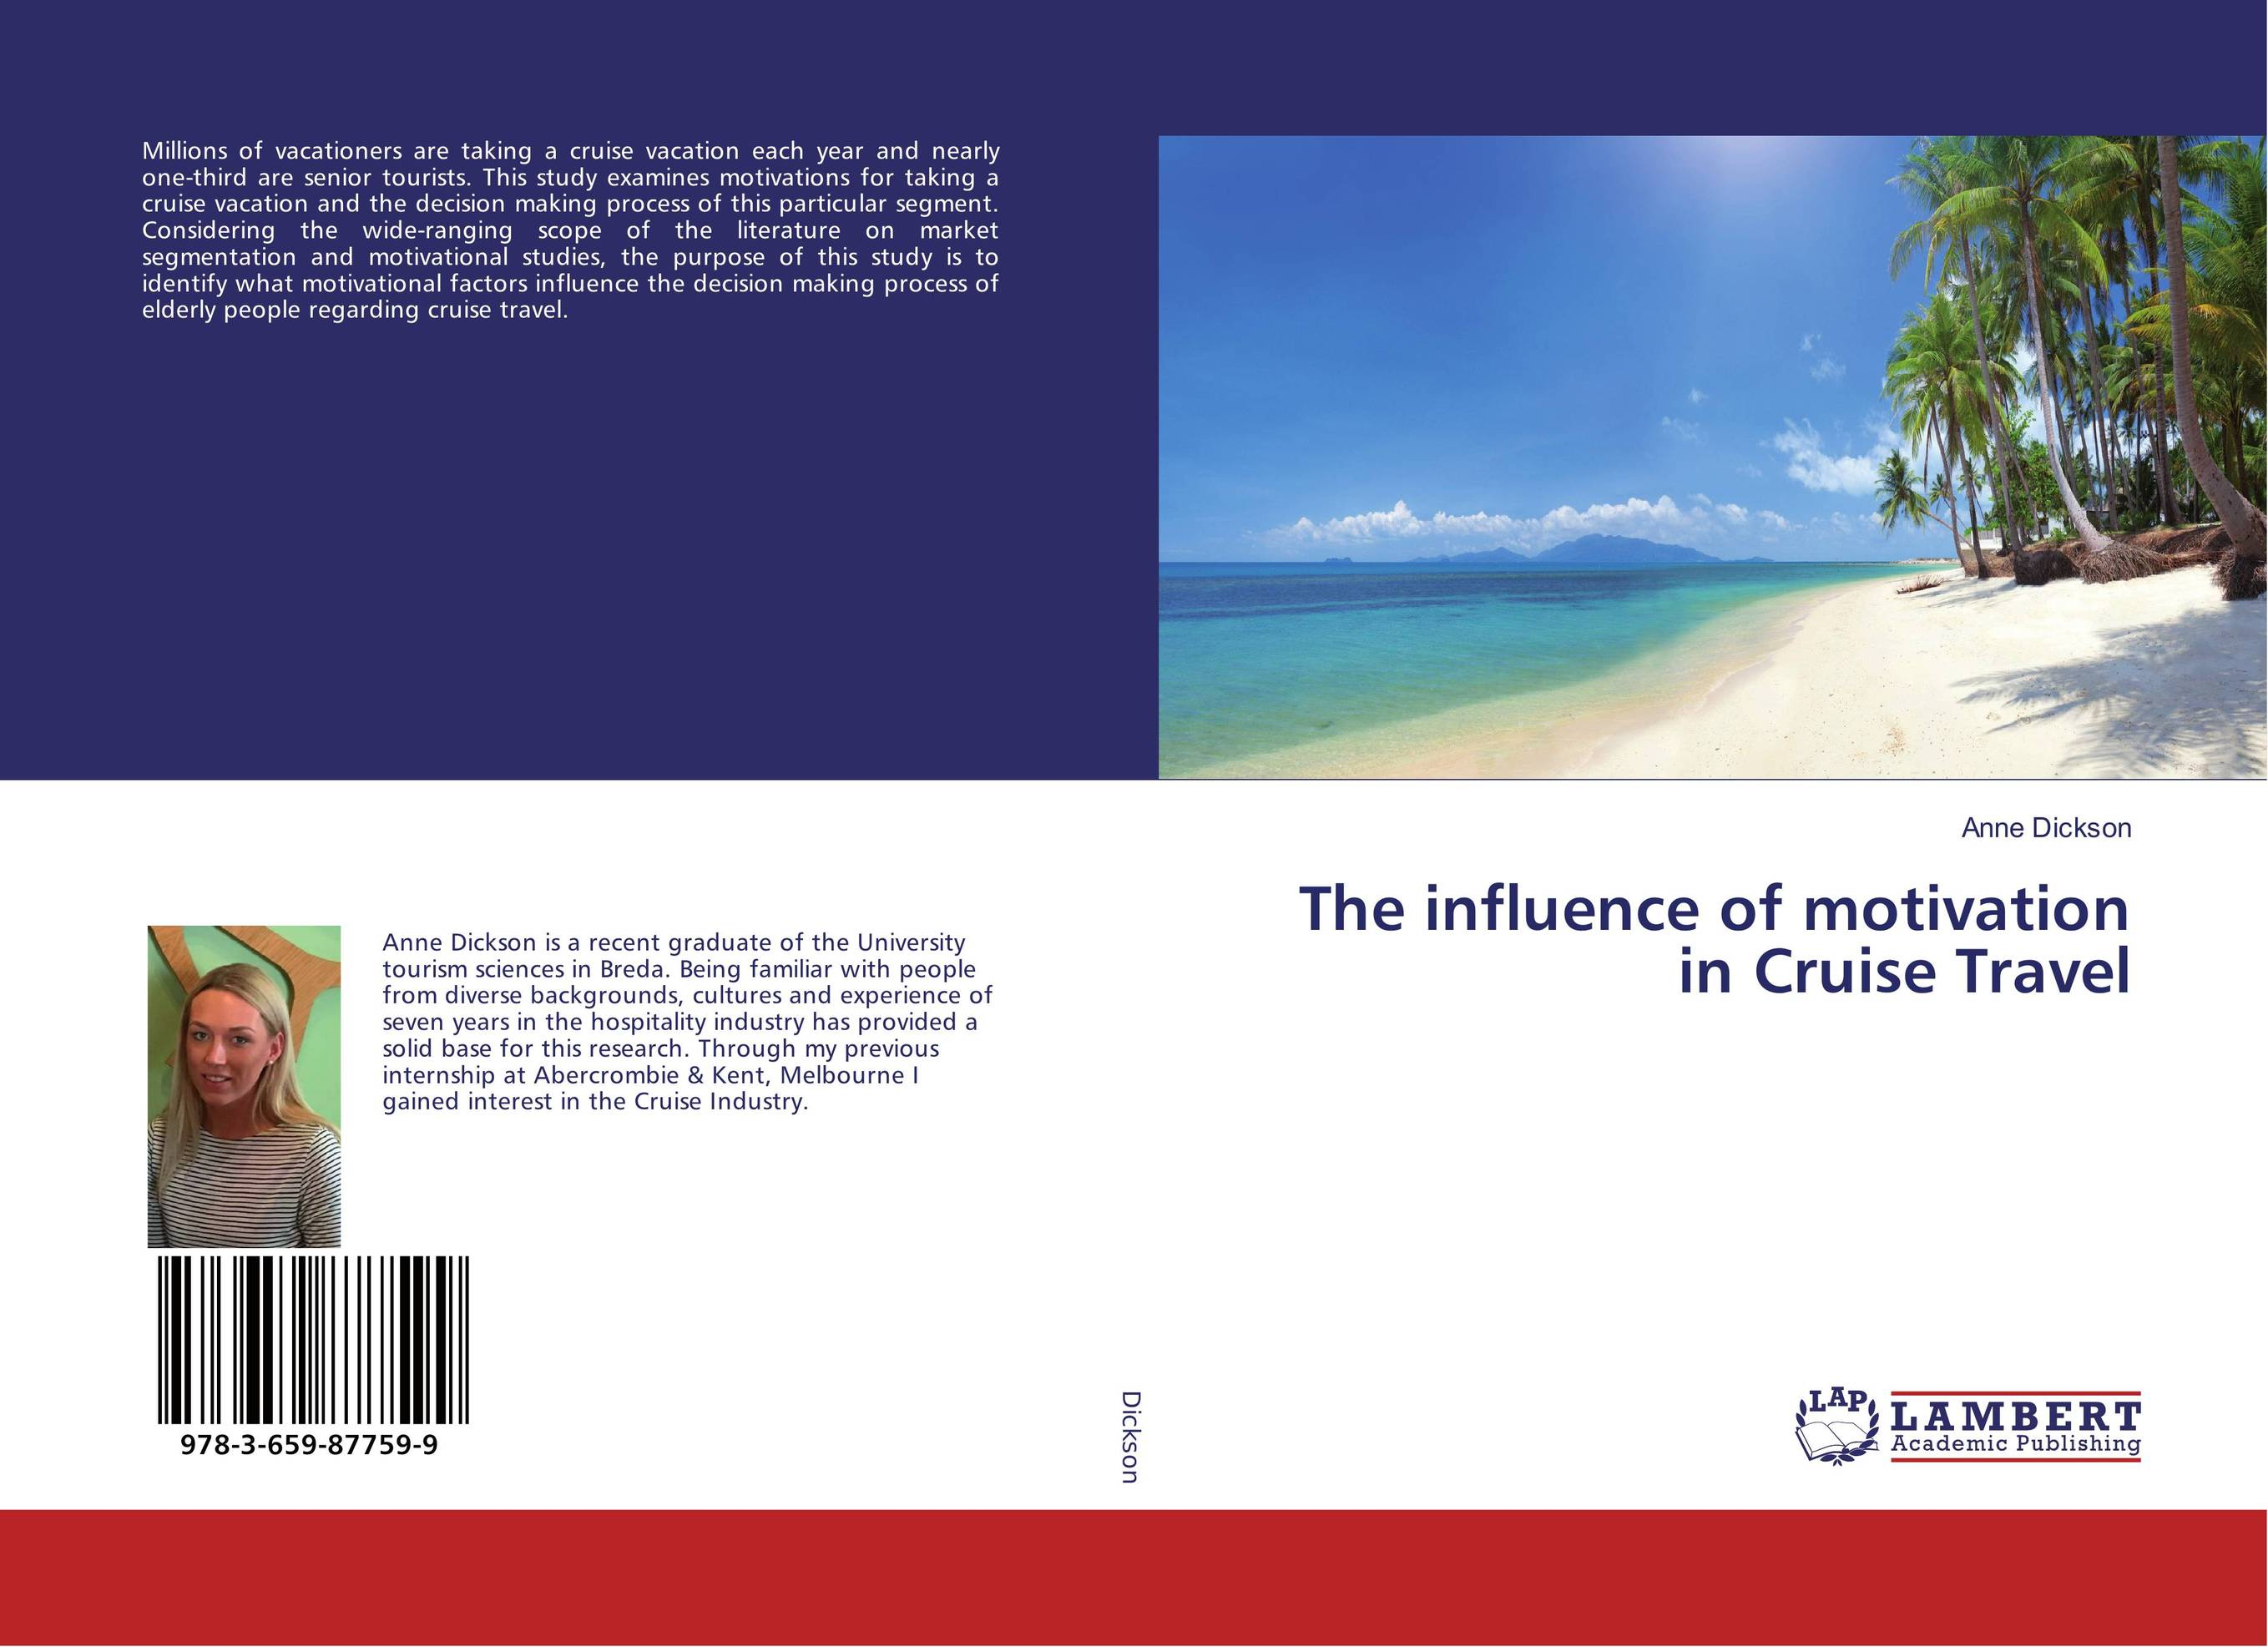 The influence of motivation in Cruise Travel